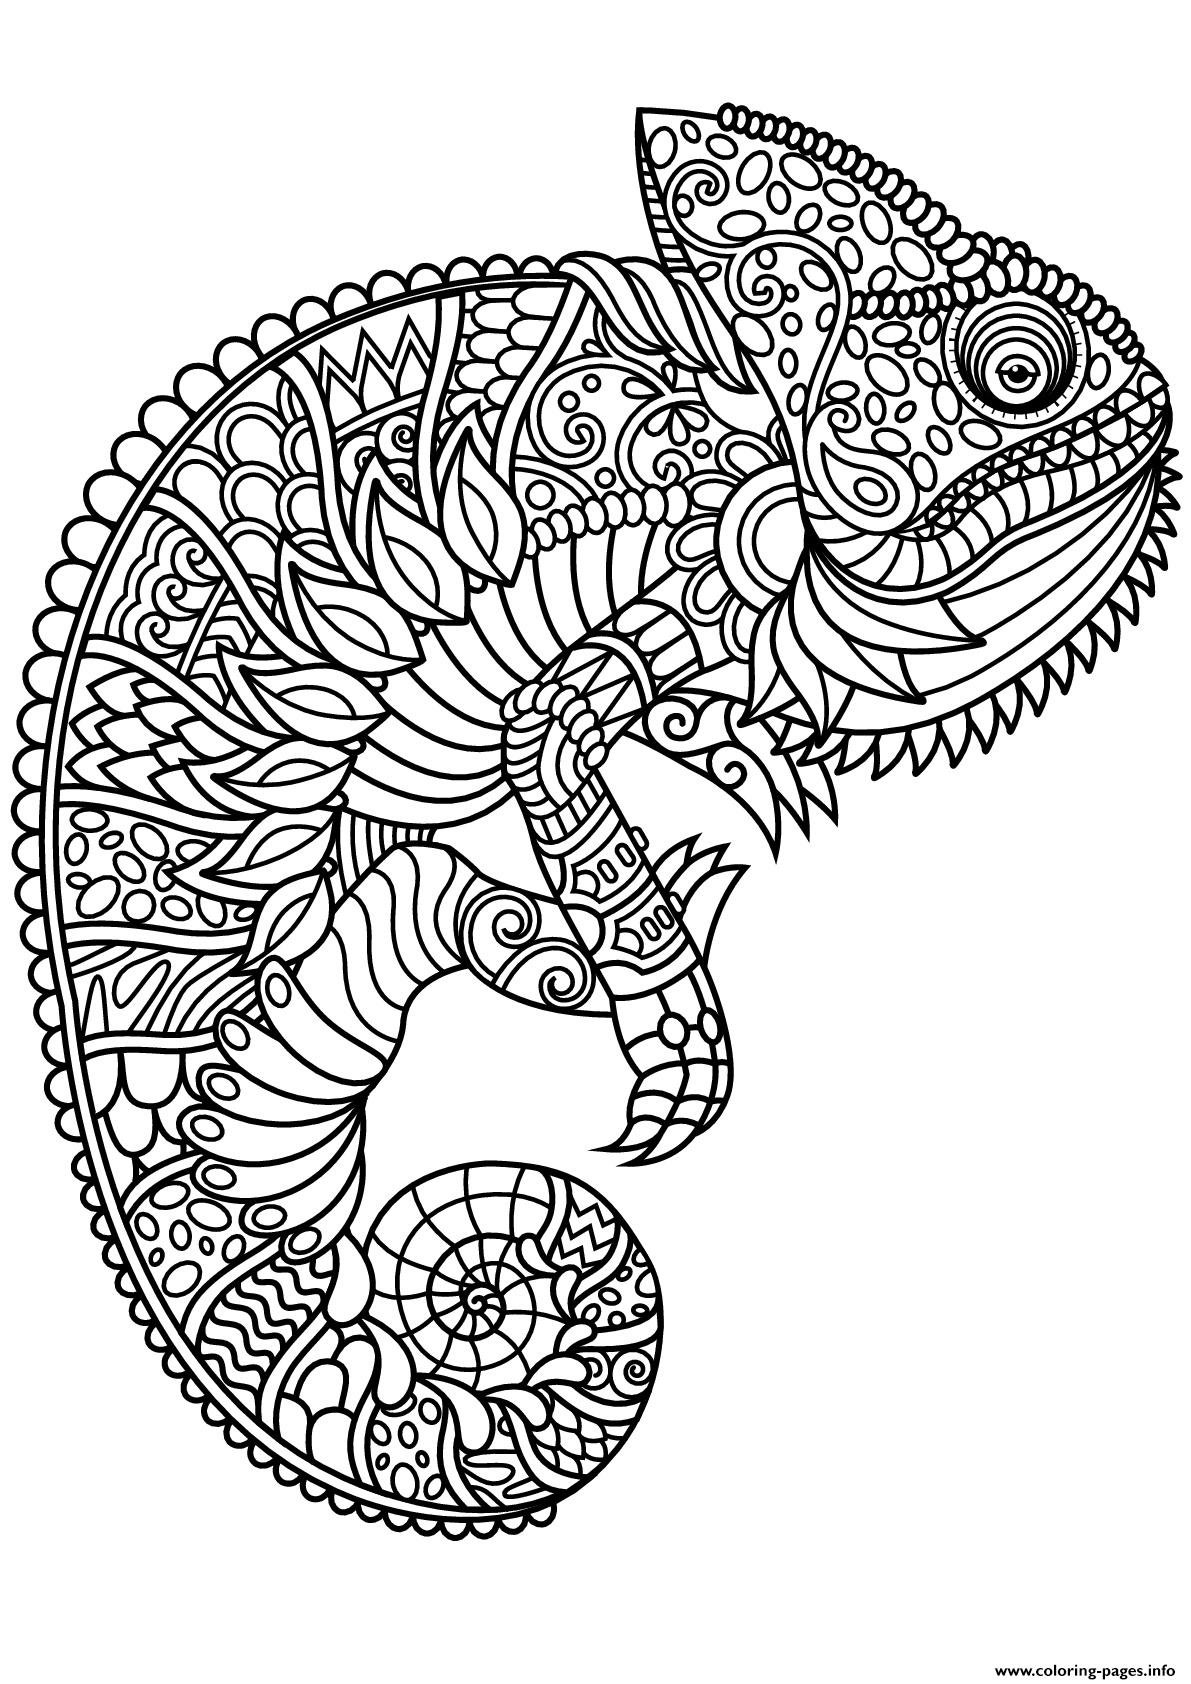 Mandala Chameleon Animal Coloring